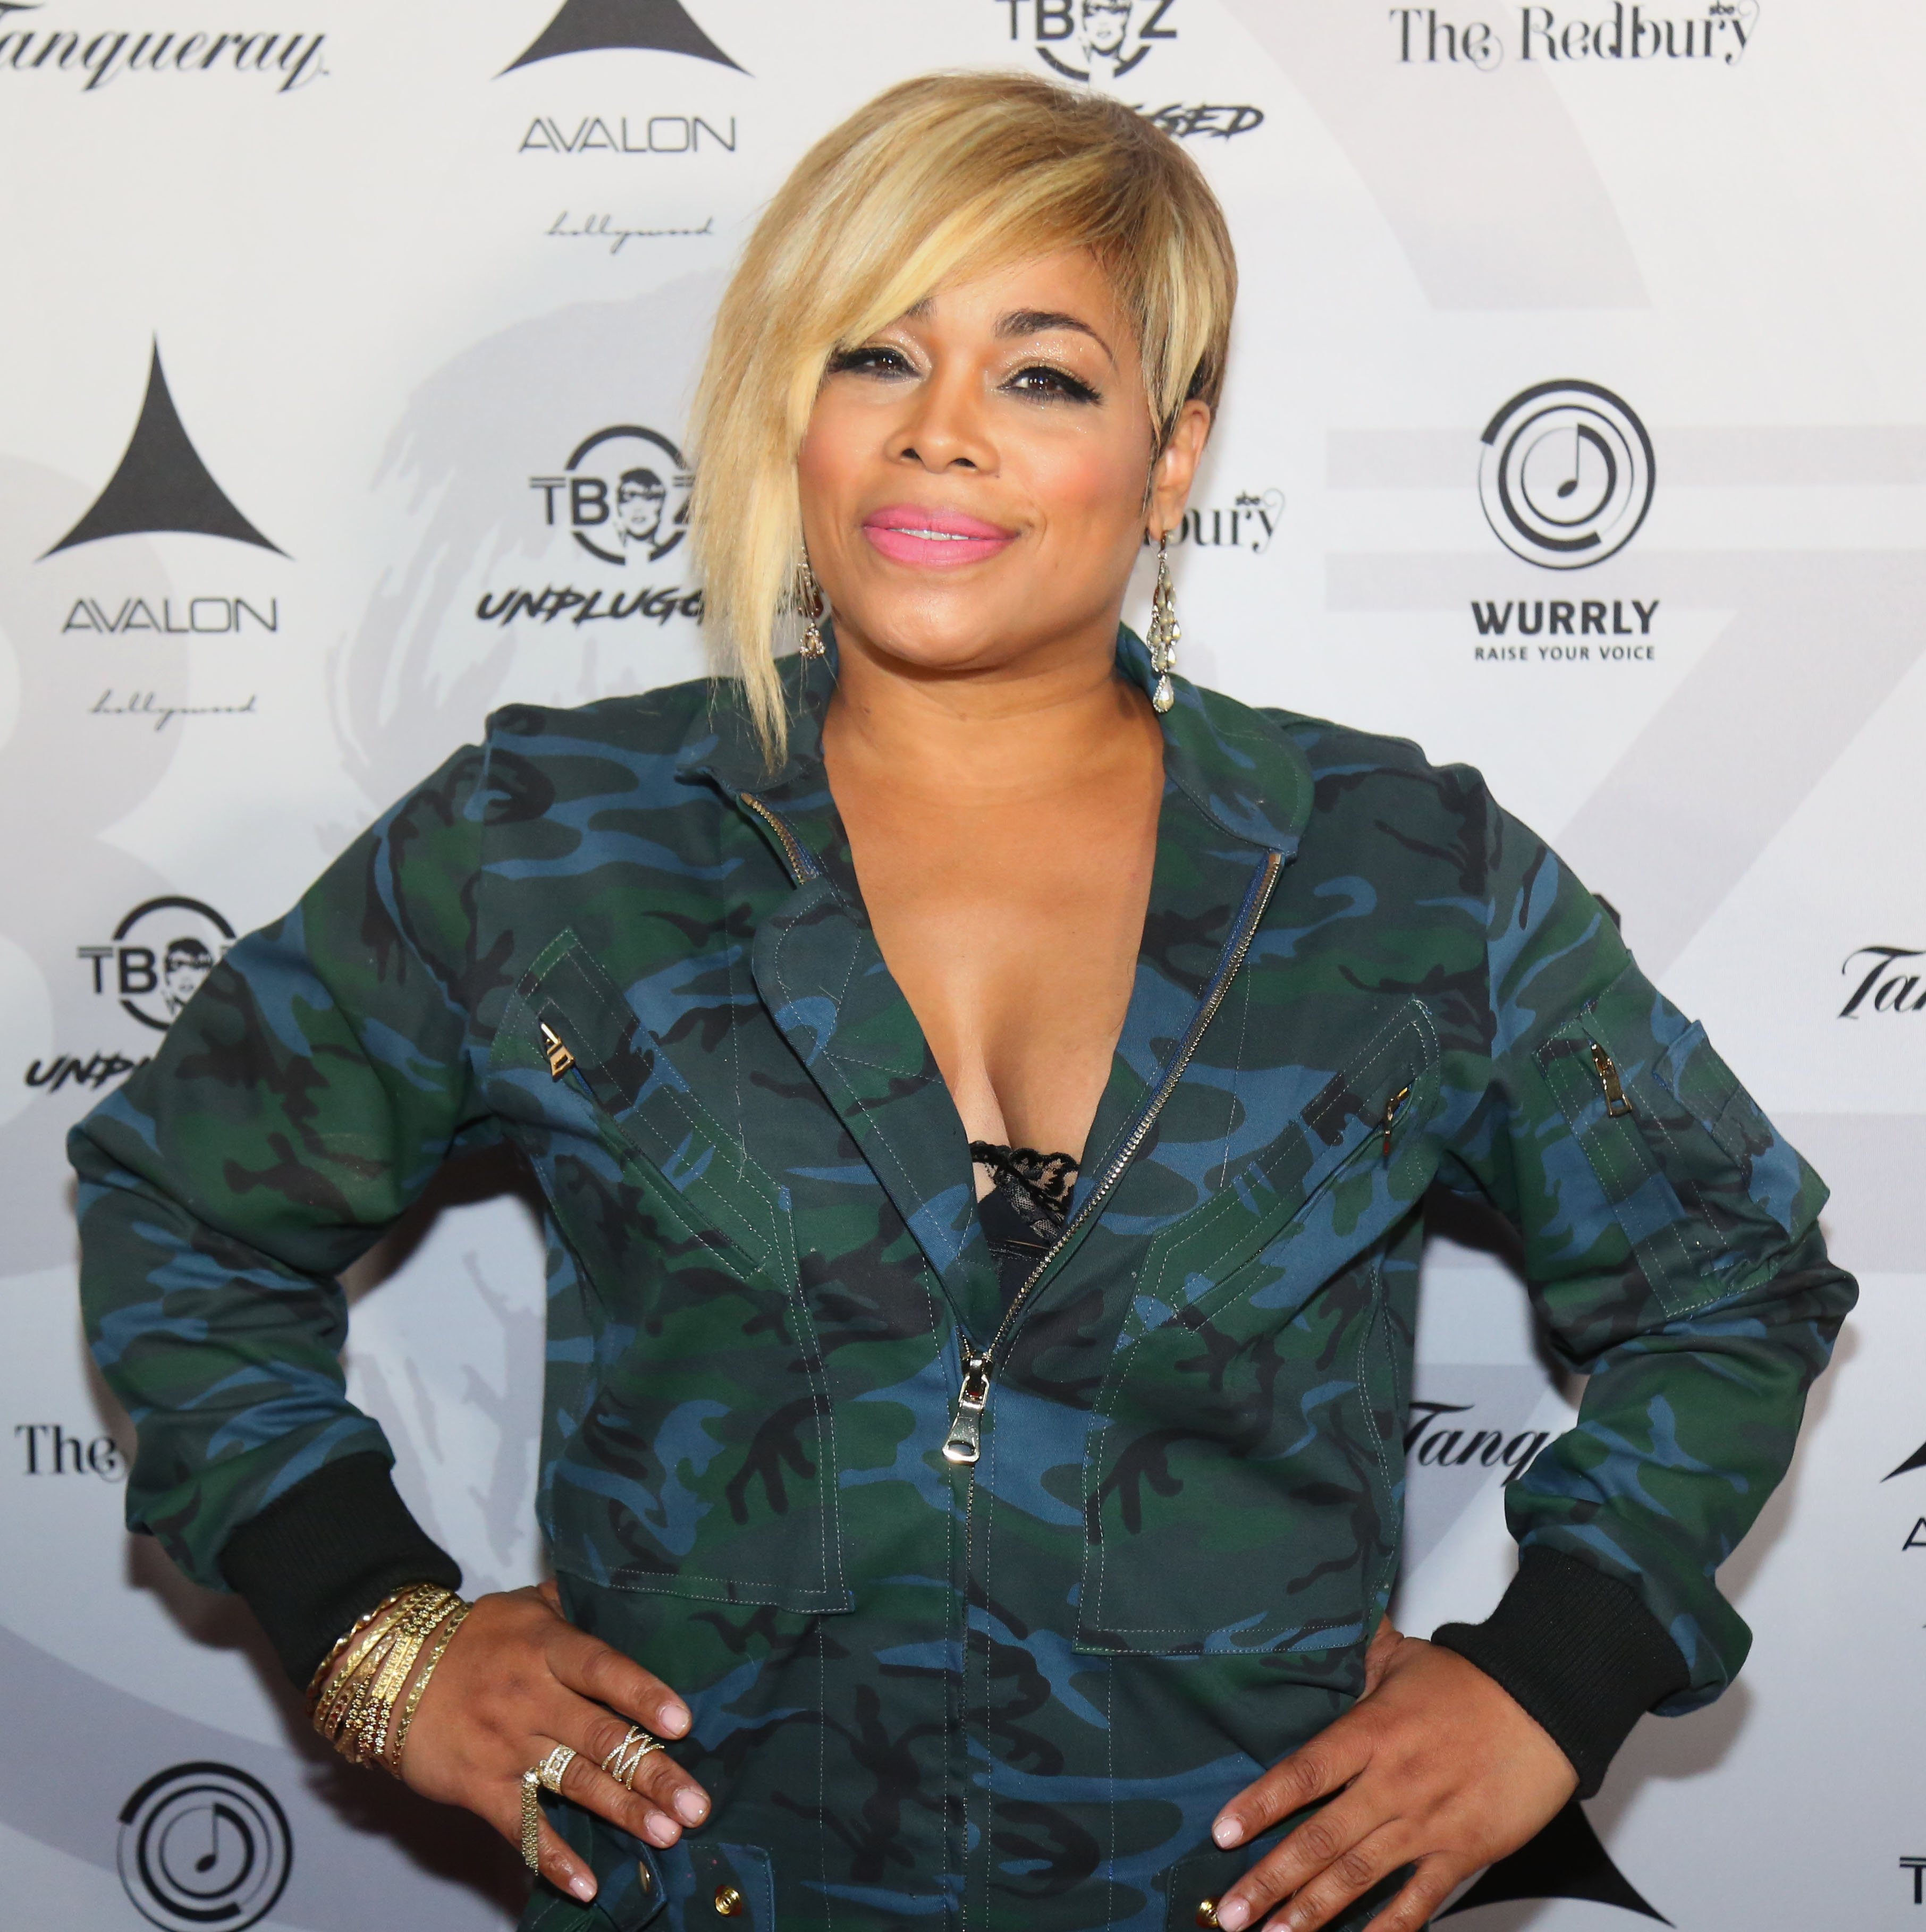 T-Boz at the T-Boz Unplugged Benefit Concert, 2017 in Hollywood, California | Source: Getty Images